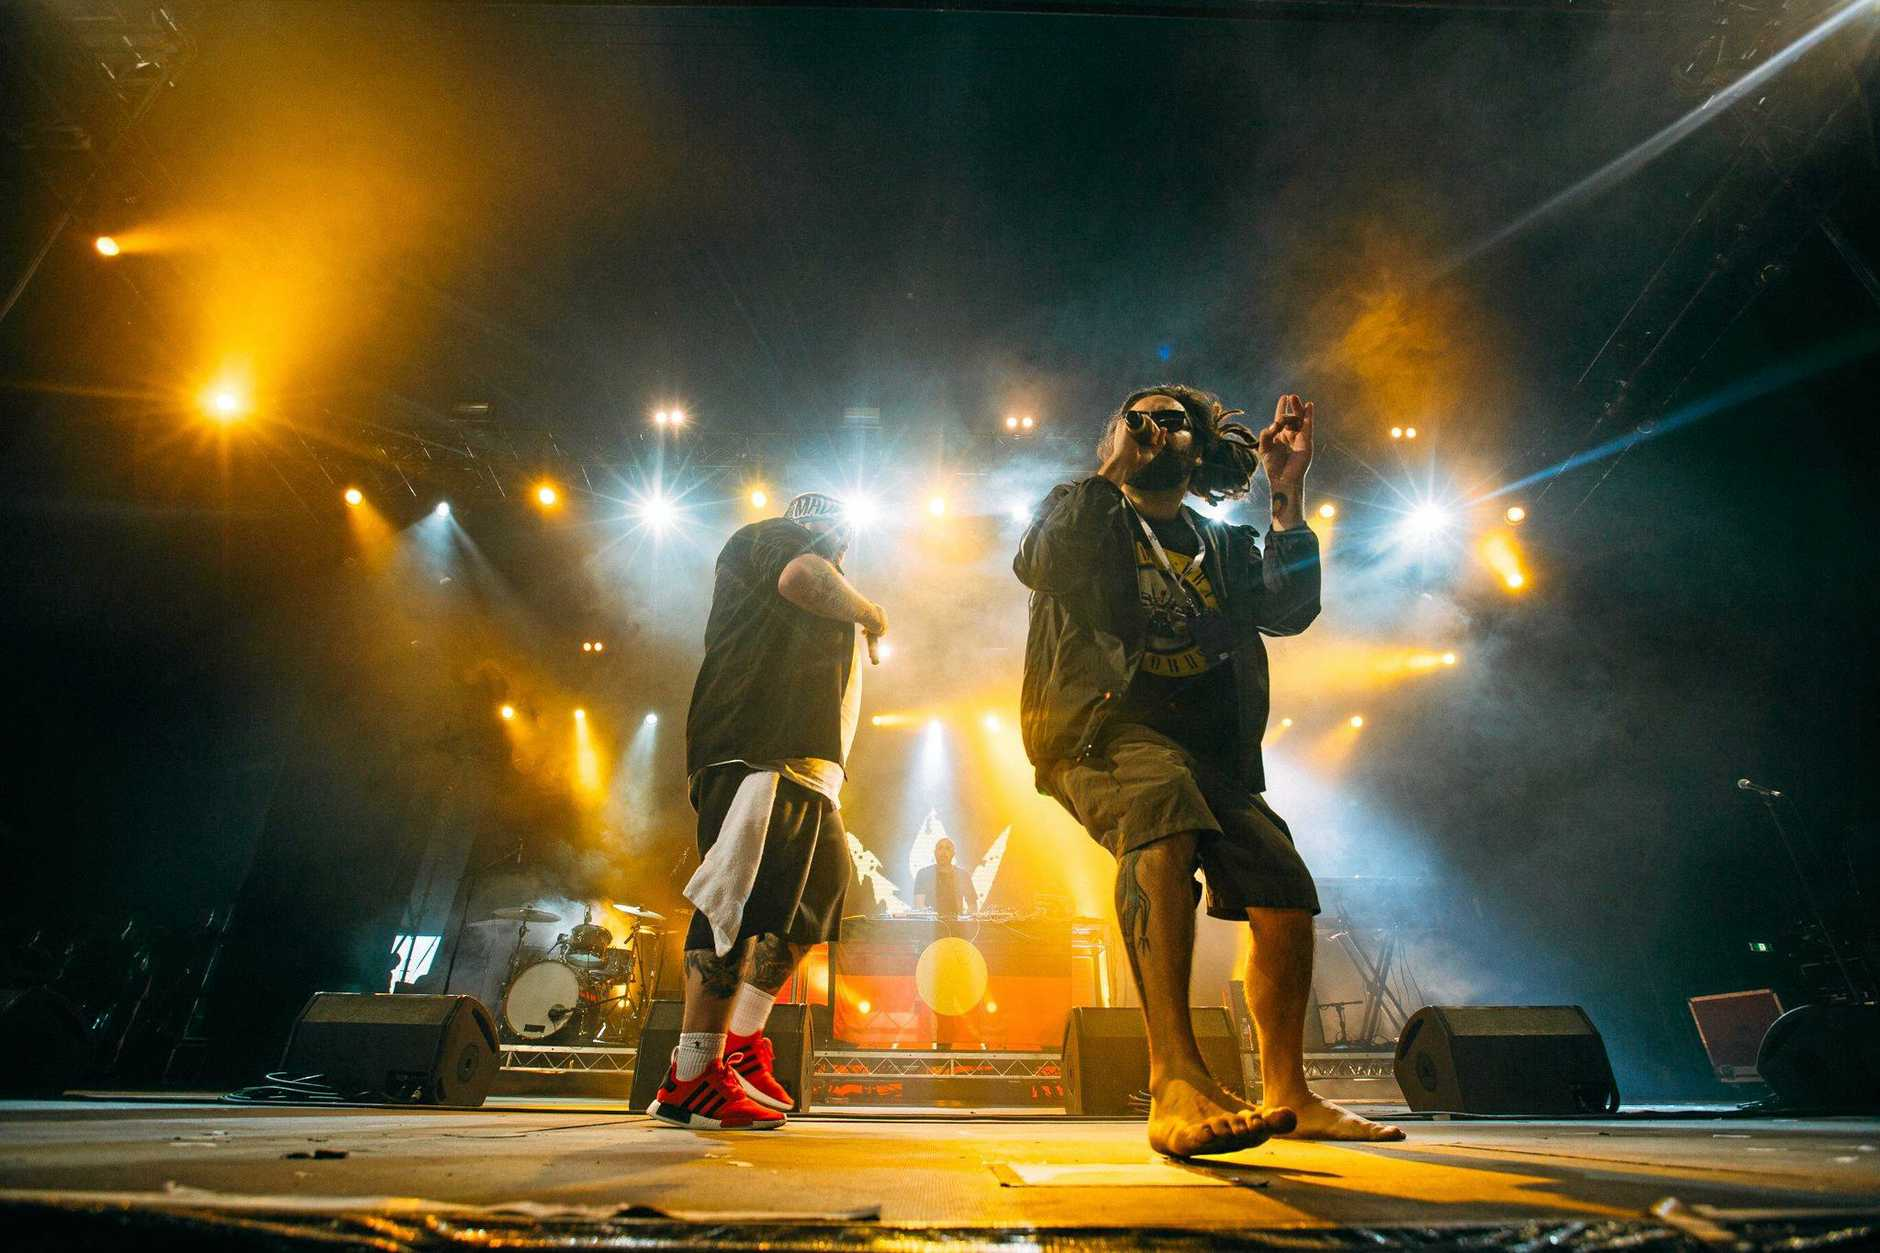 Hip hop duo Briggs and Trials are A B Original, performing at Splendour in the Grass 2017.